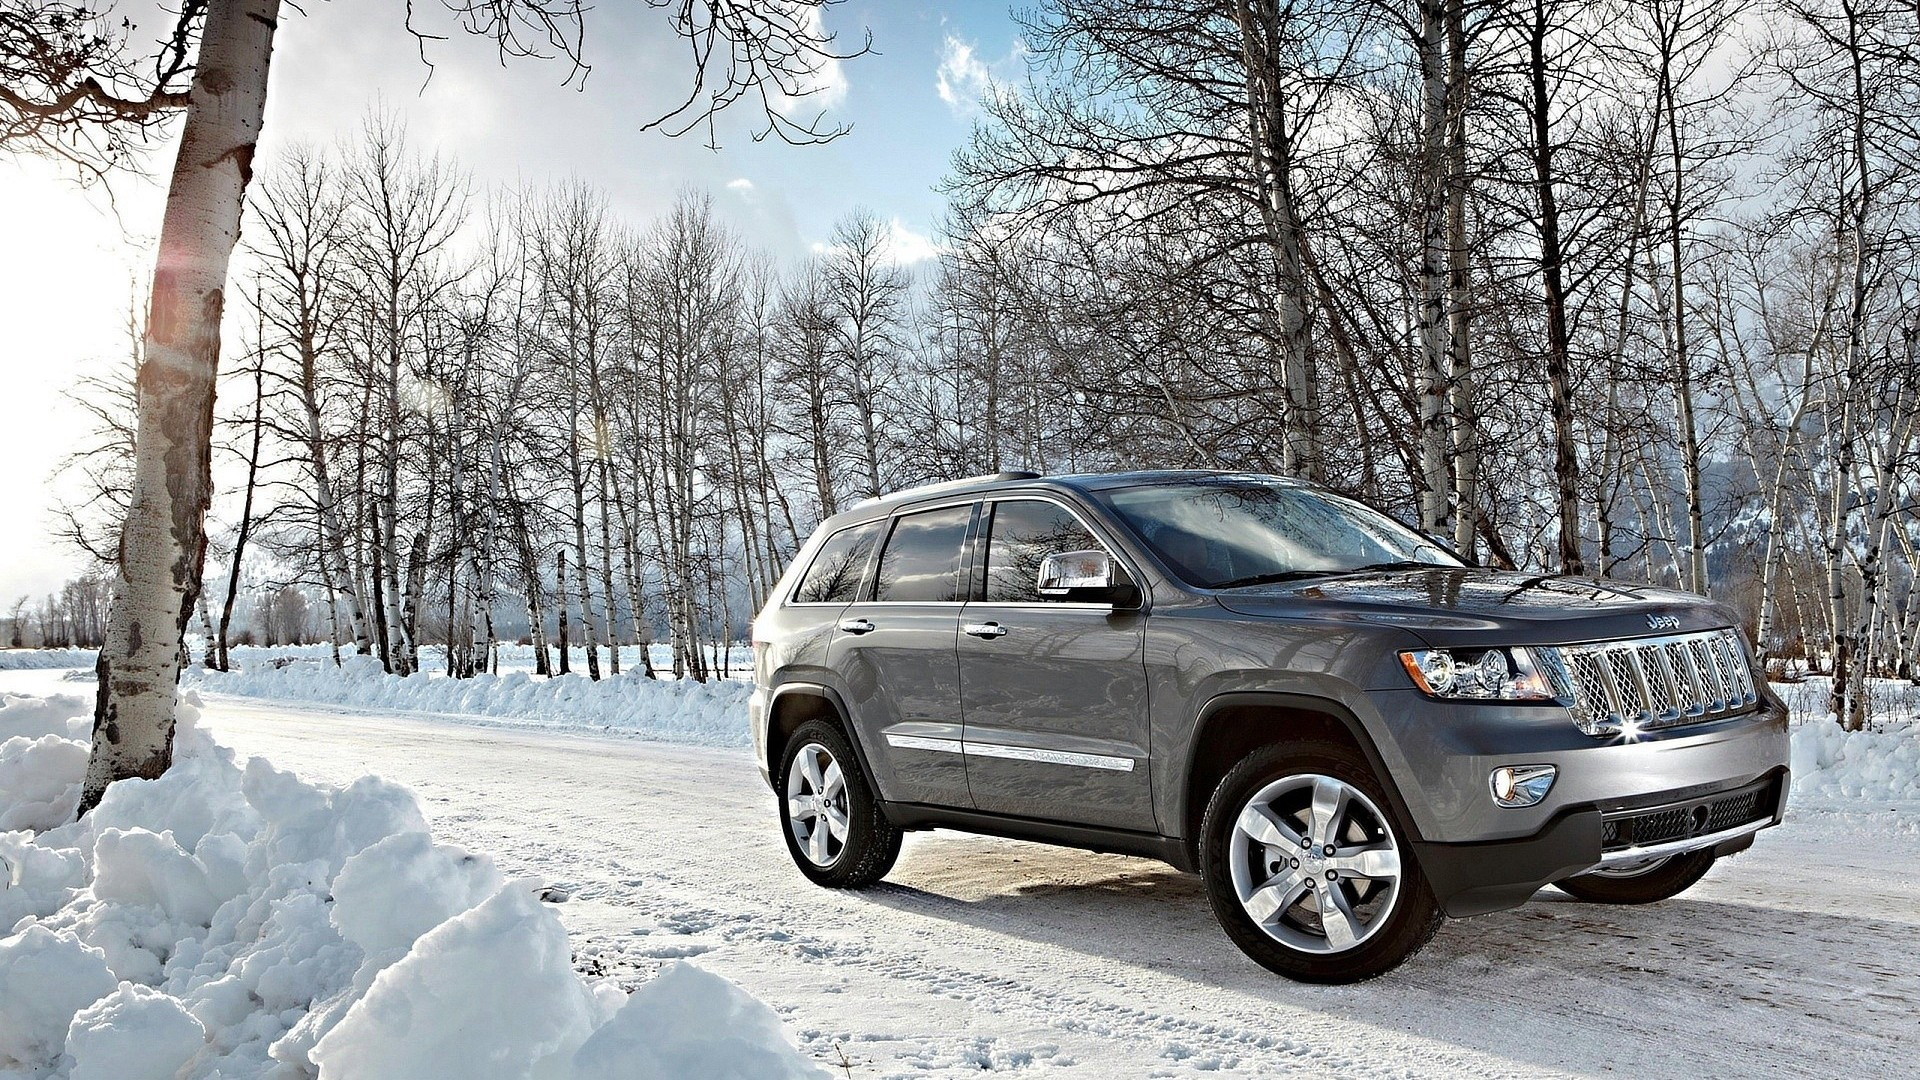 Jeep Grand Cherokee In Snow 1920x1080